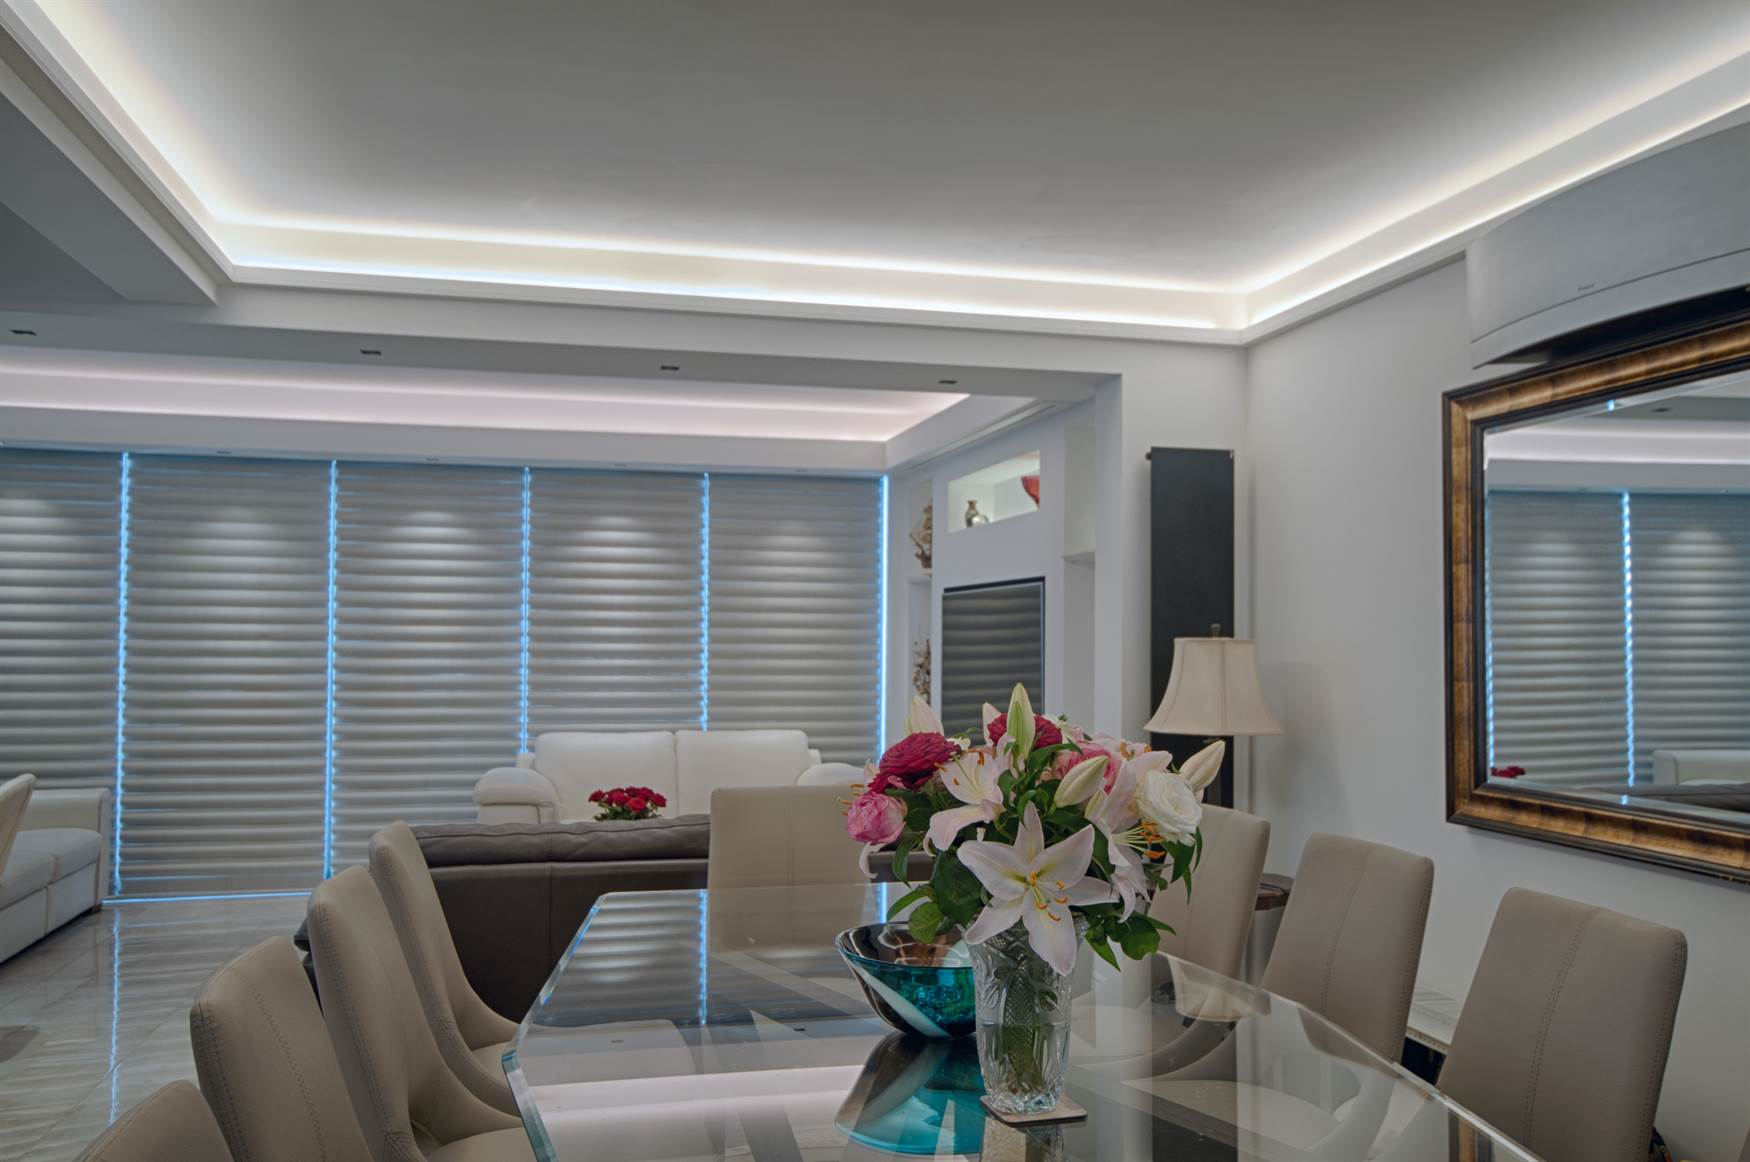 Dining Room with LED tape in coving